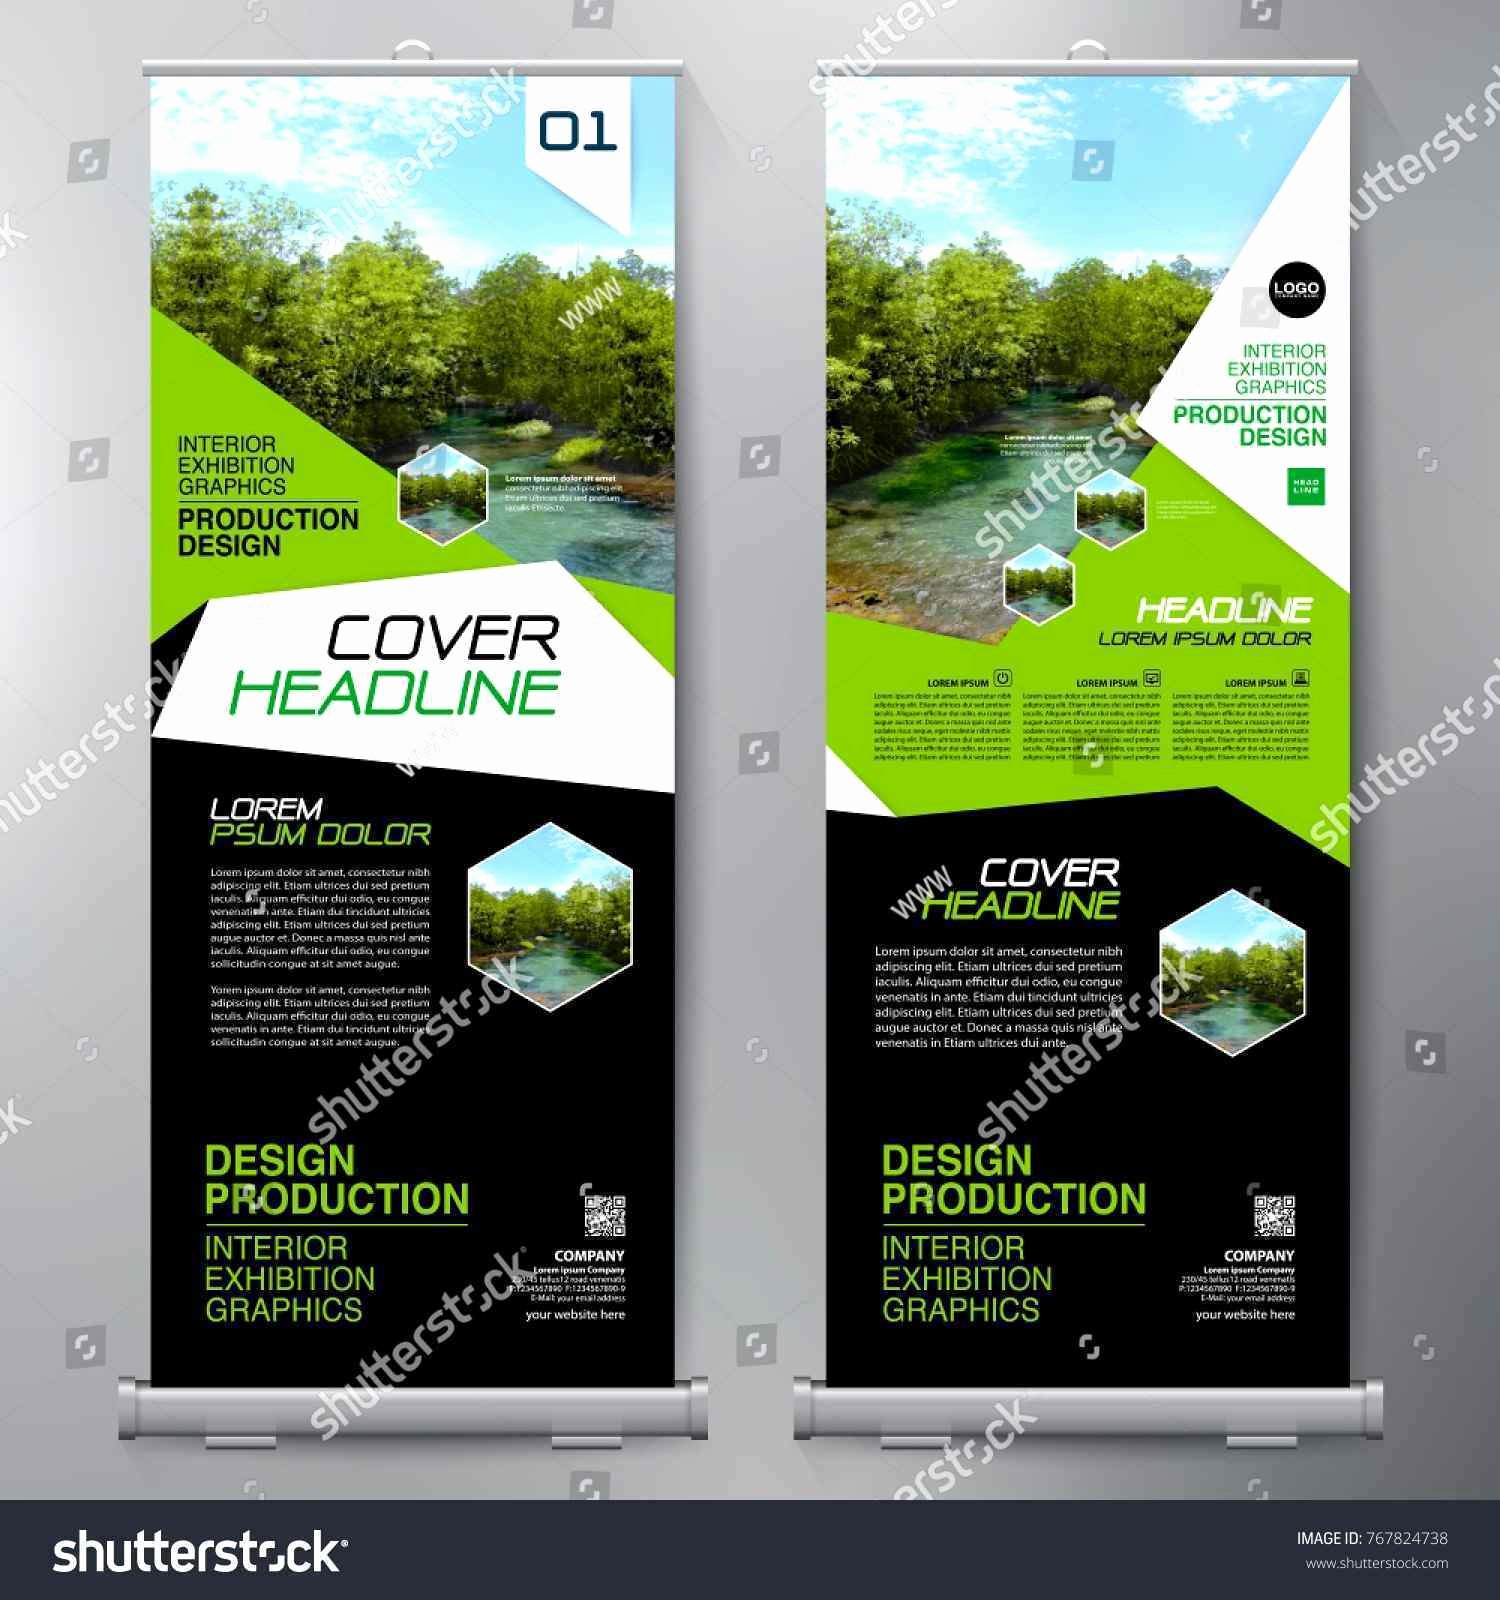 Pop Up Banner Template Awesome Pop Up Banner Template Unique Business Roll Up Standee